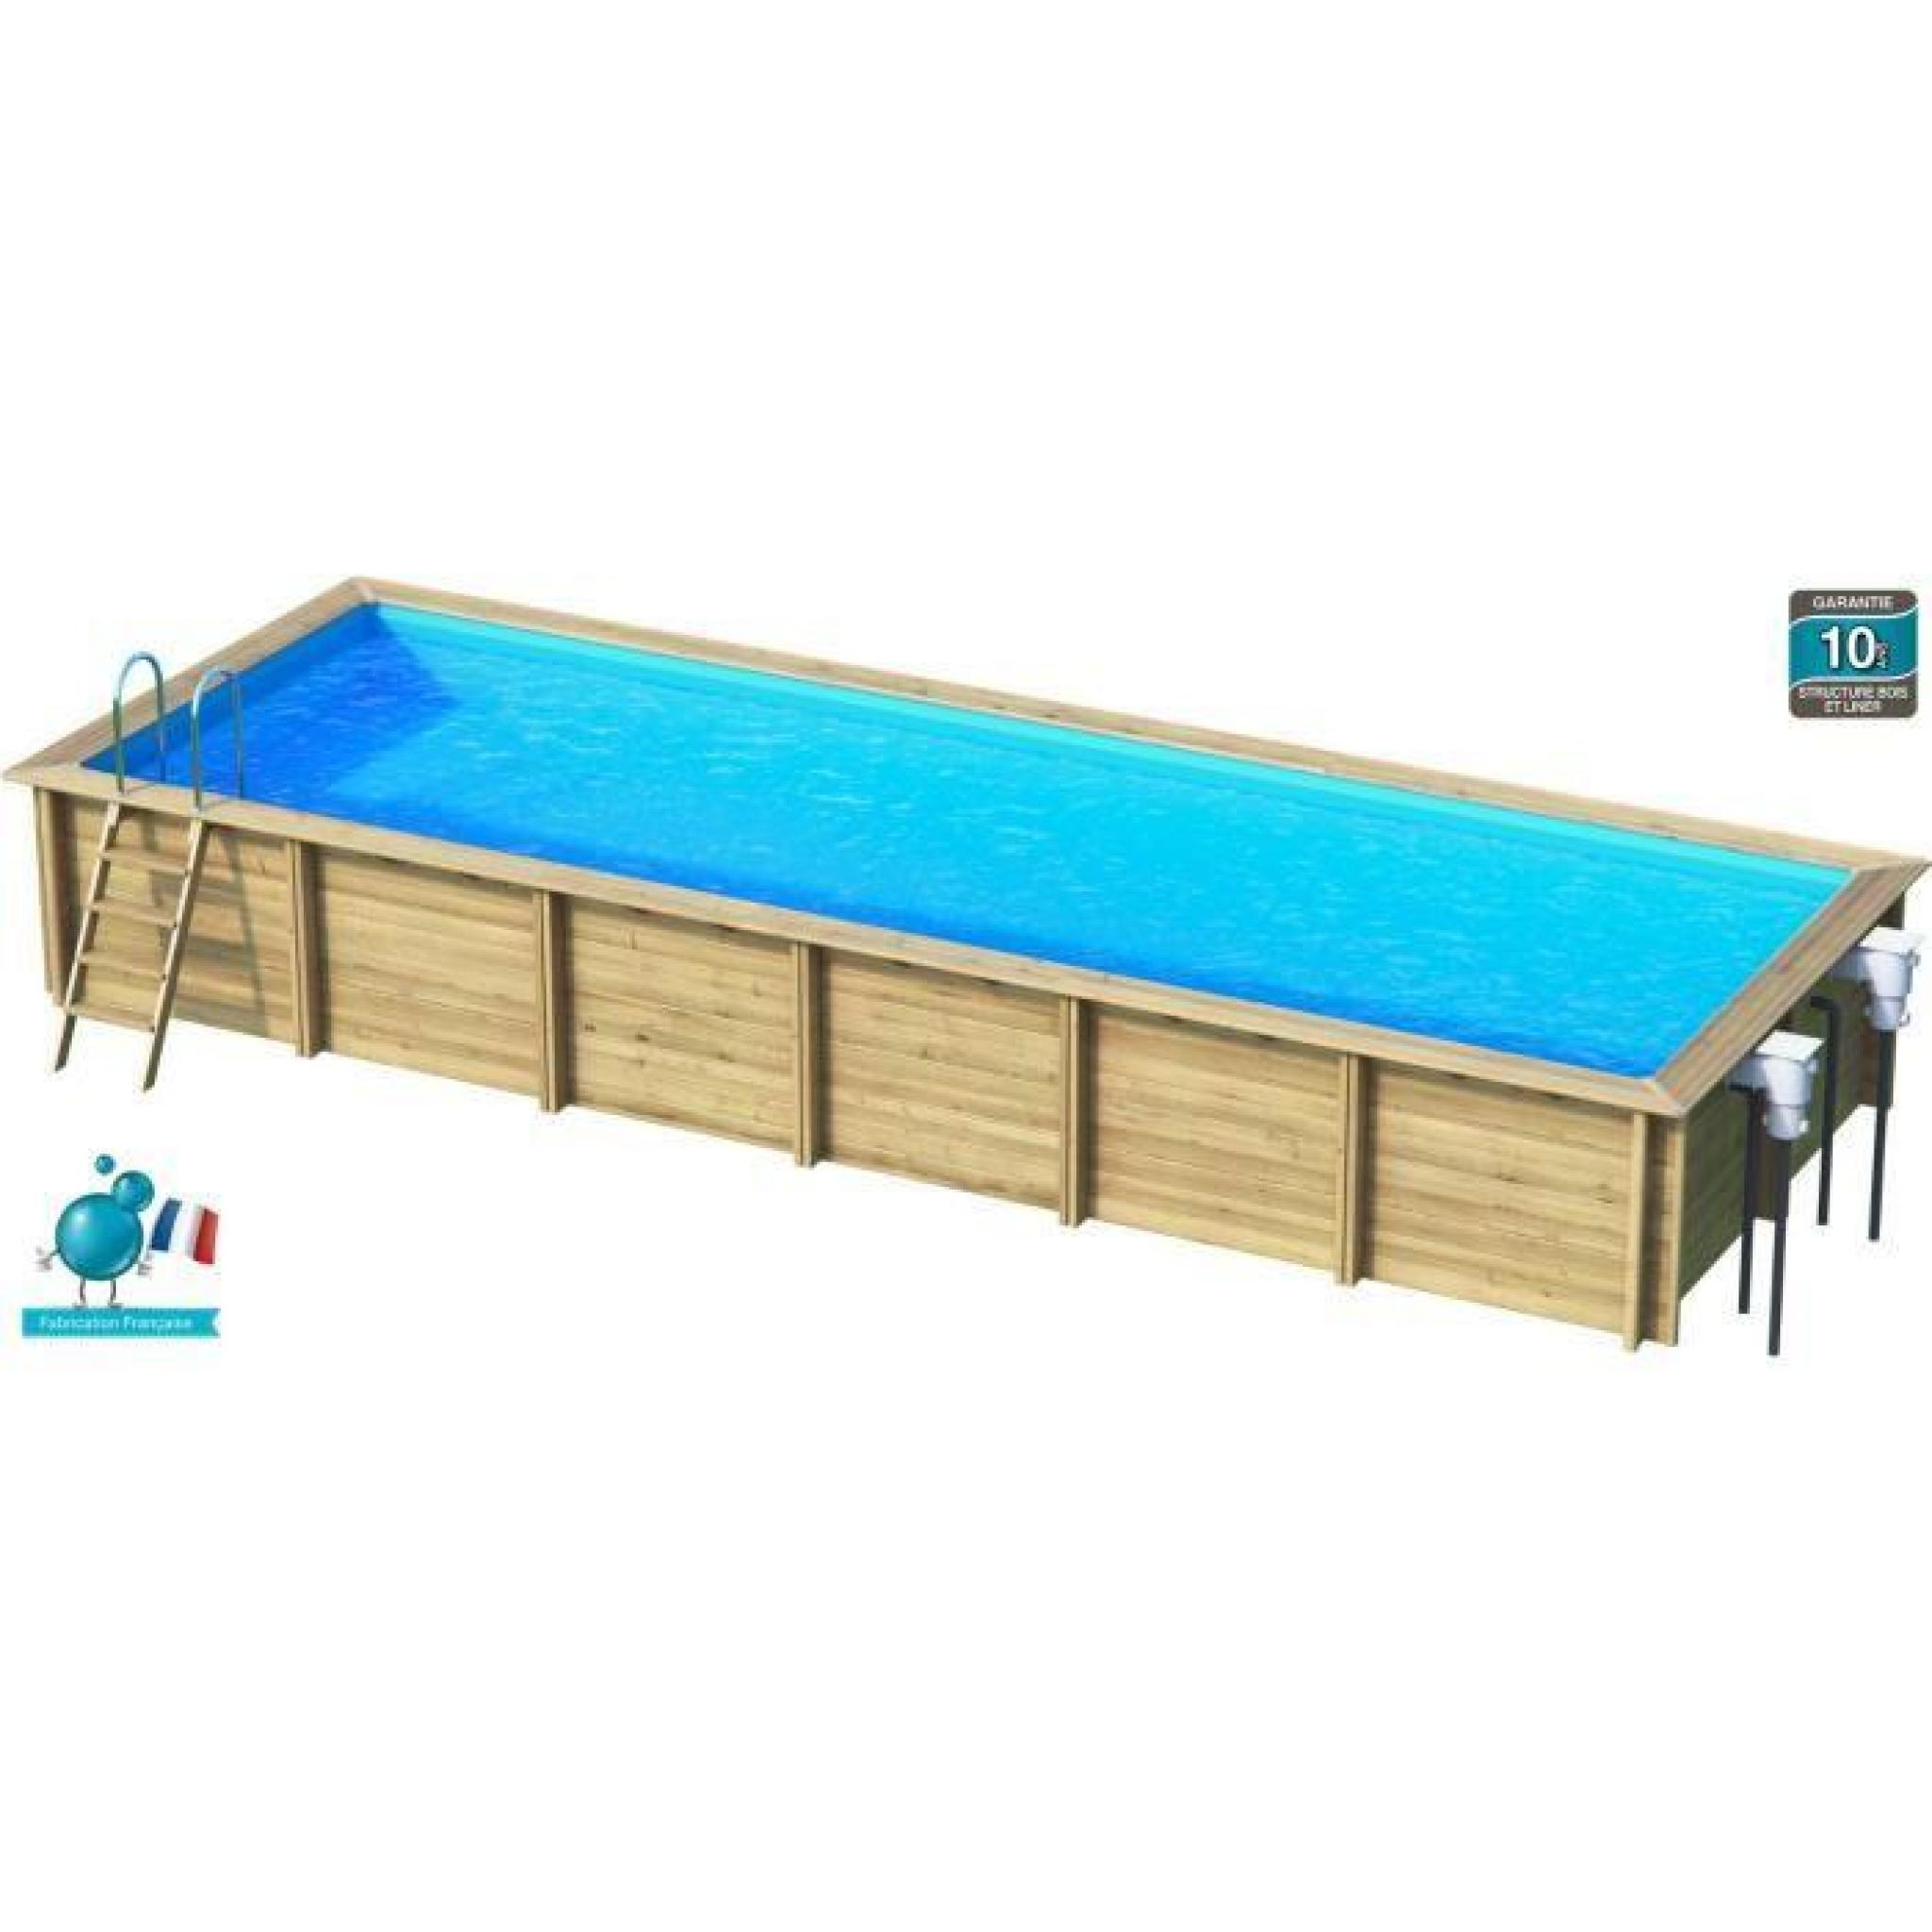 piscine pas cher bois ubbink azura piscine bois bleue 350x200x71cm achat apercu piscine bois. Black Bedroom Furniture Sets. Home Design Ideas